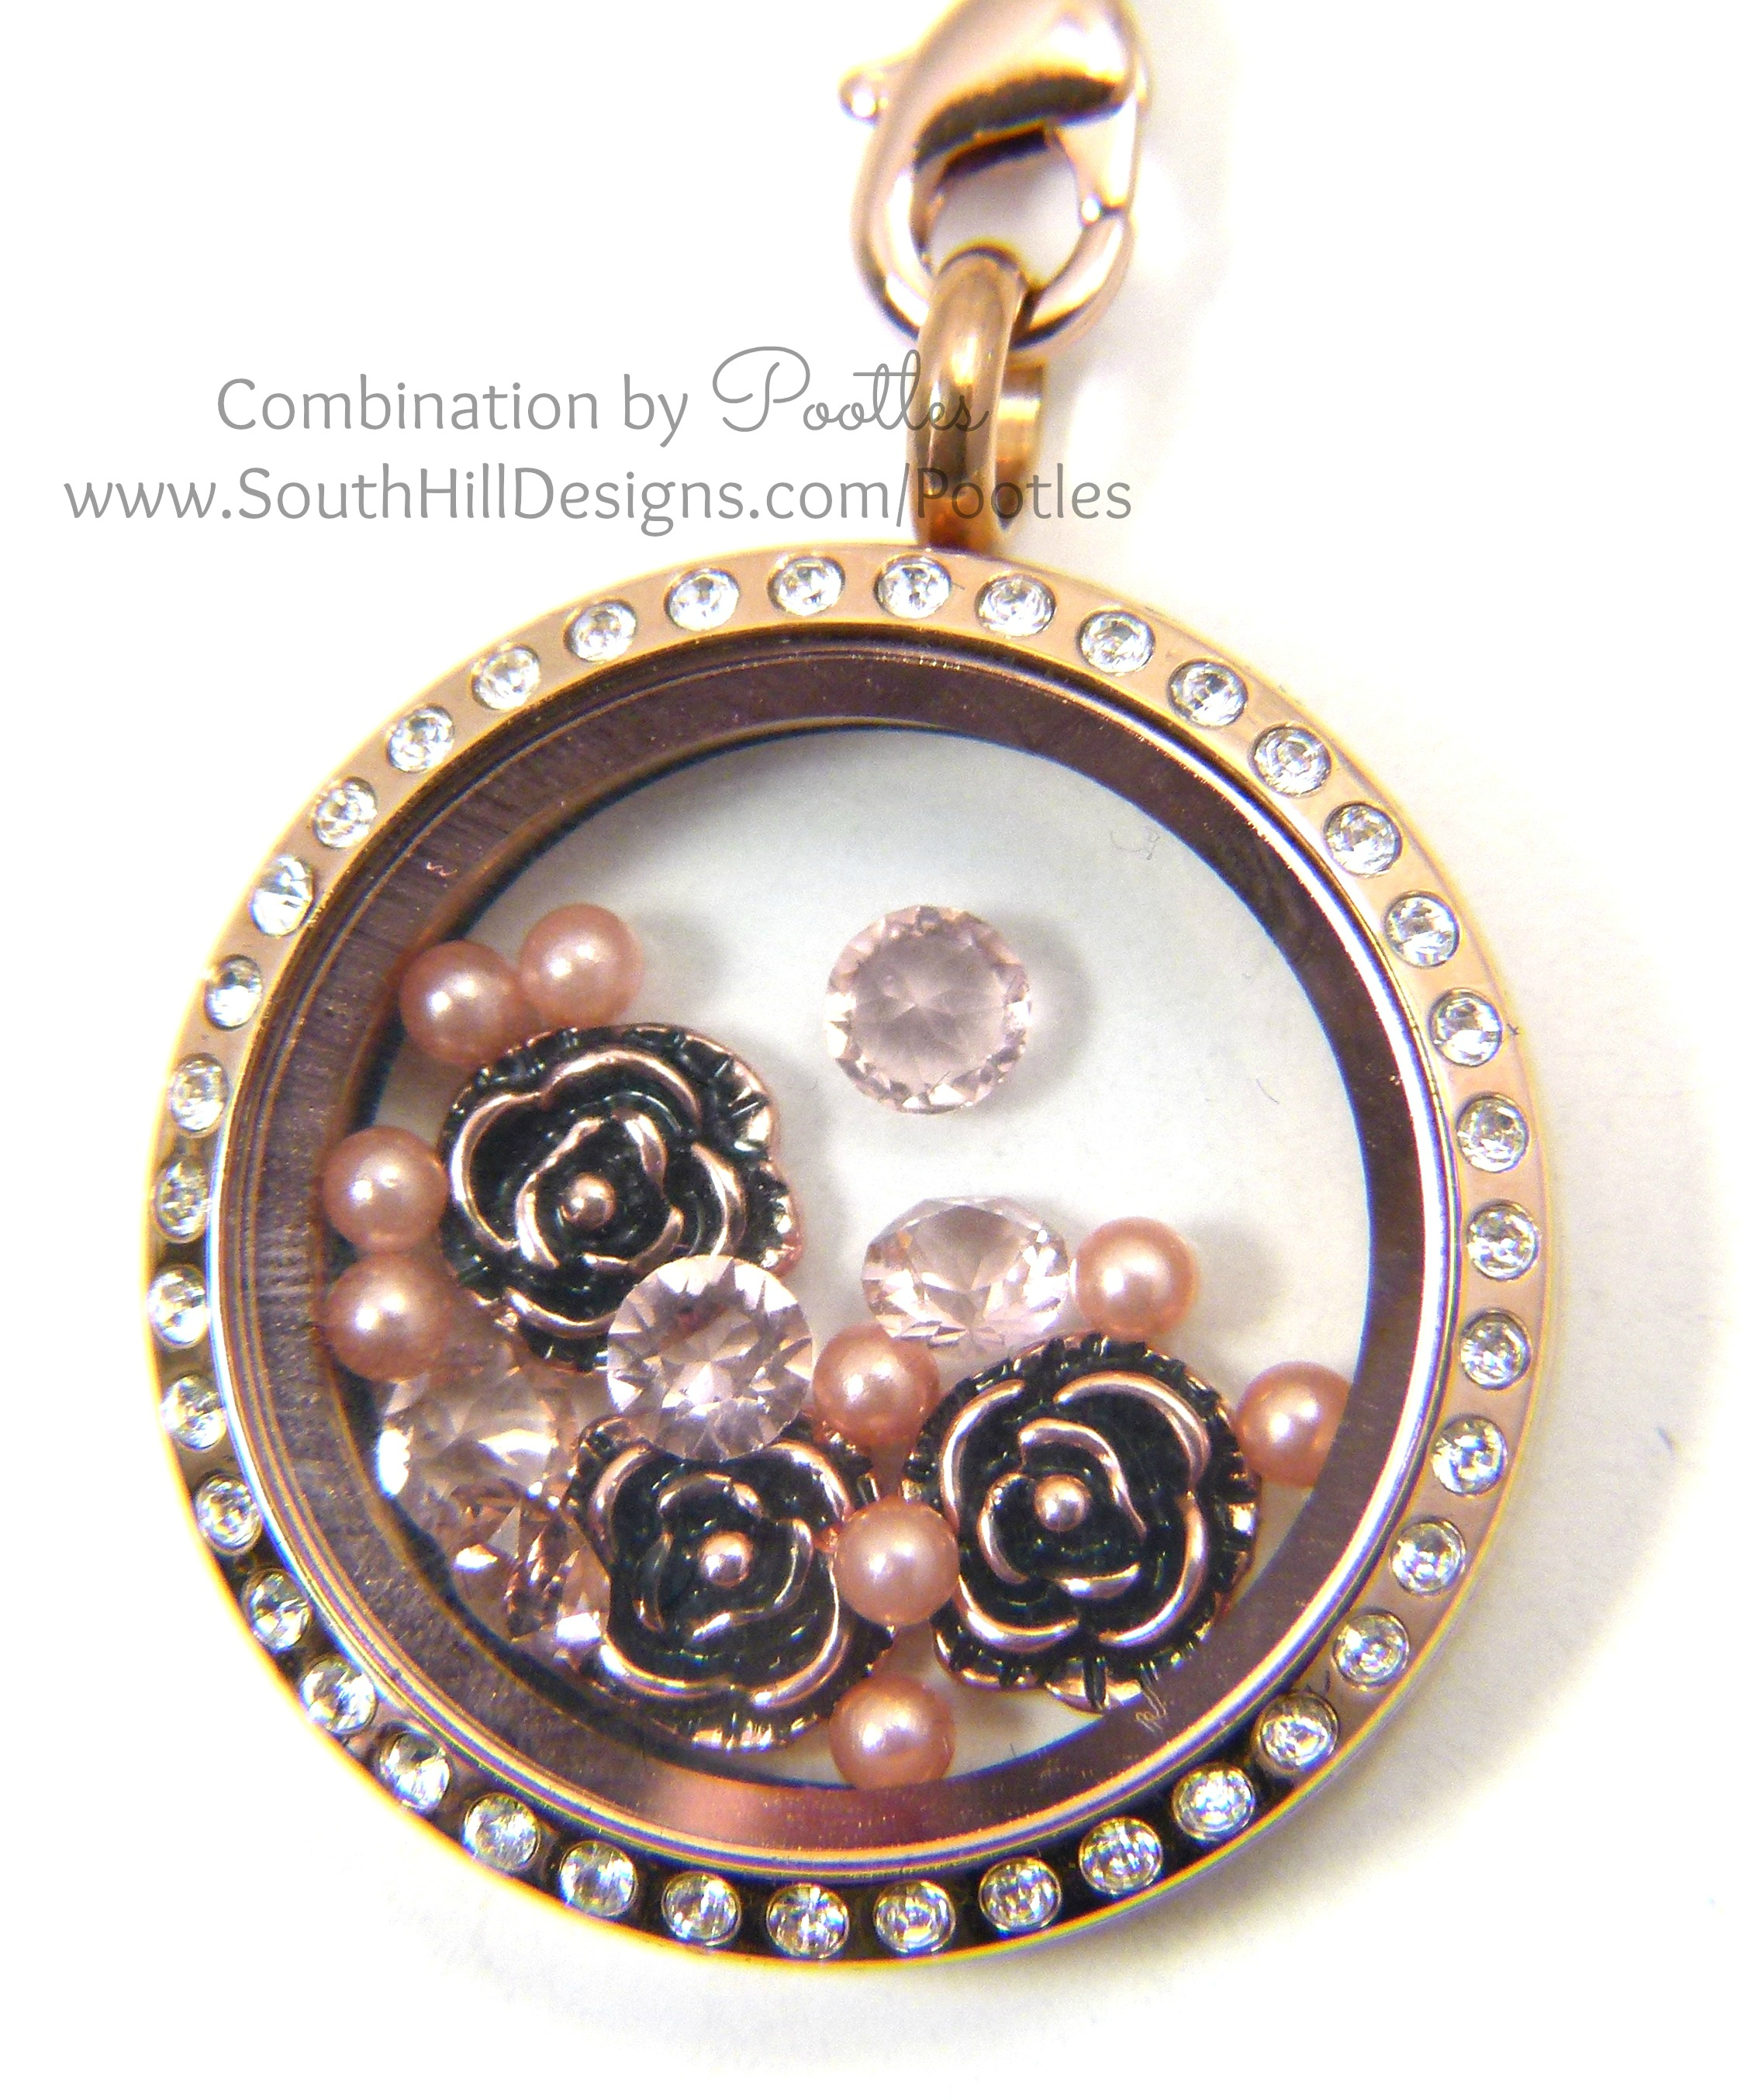 lockets gold charm large english pendant hallmark vintage top st christopher products